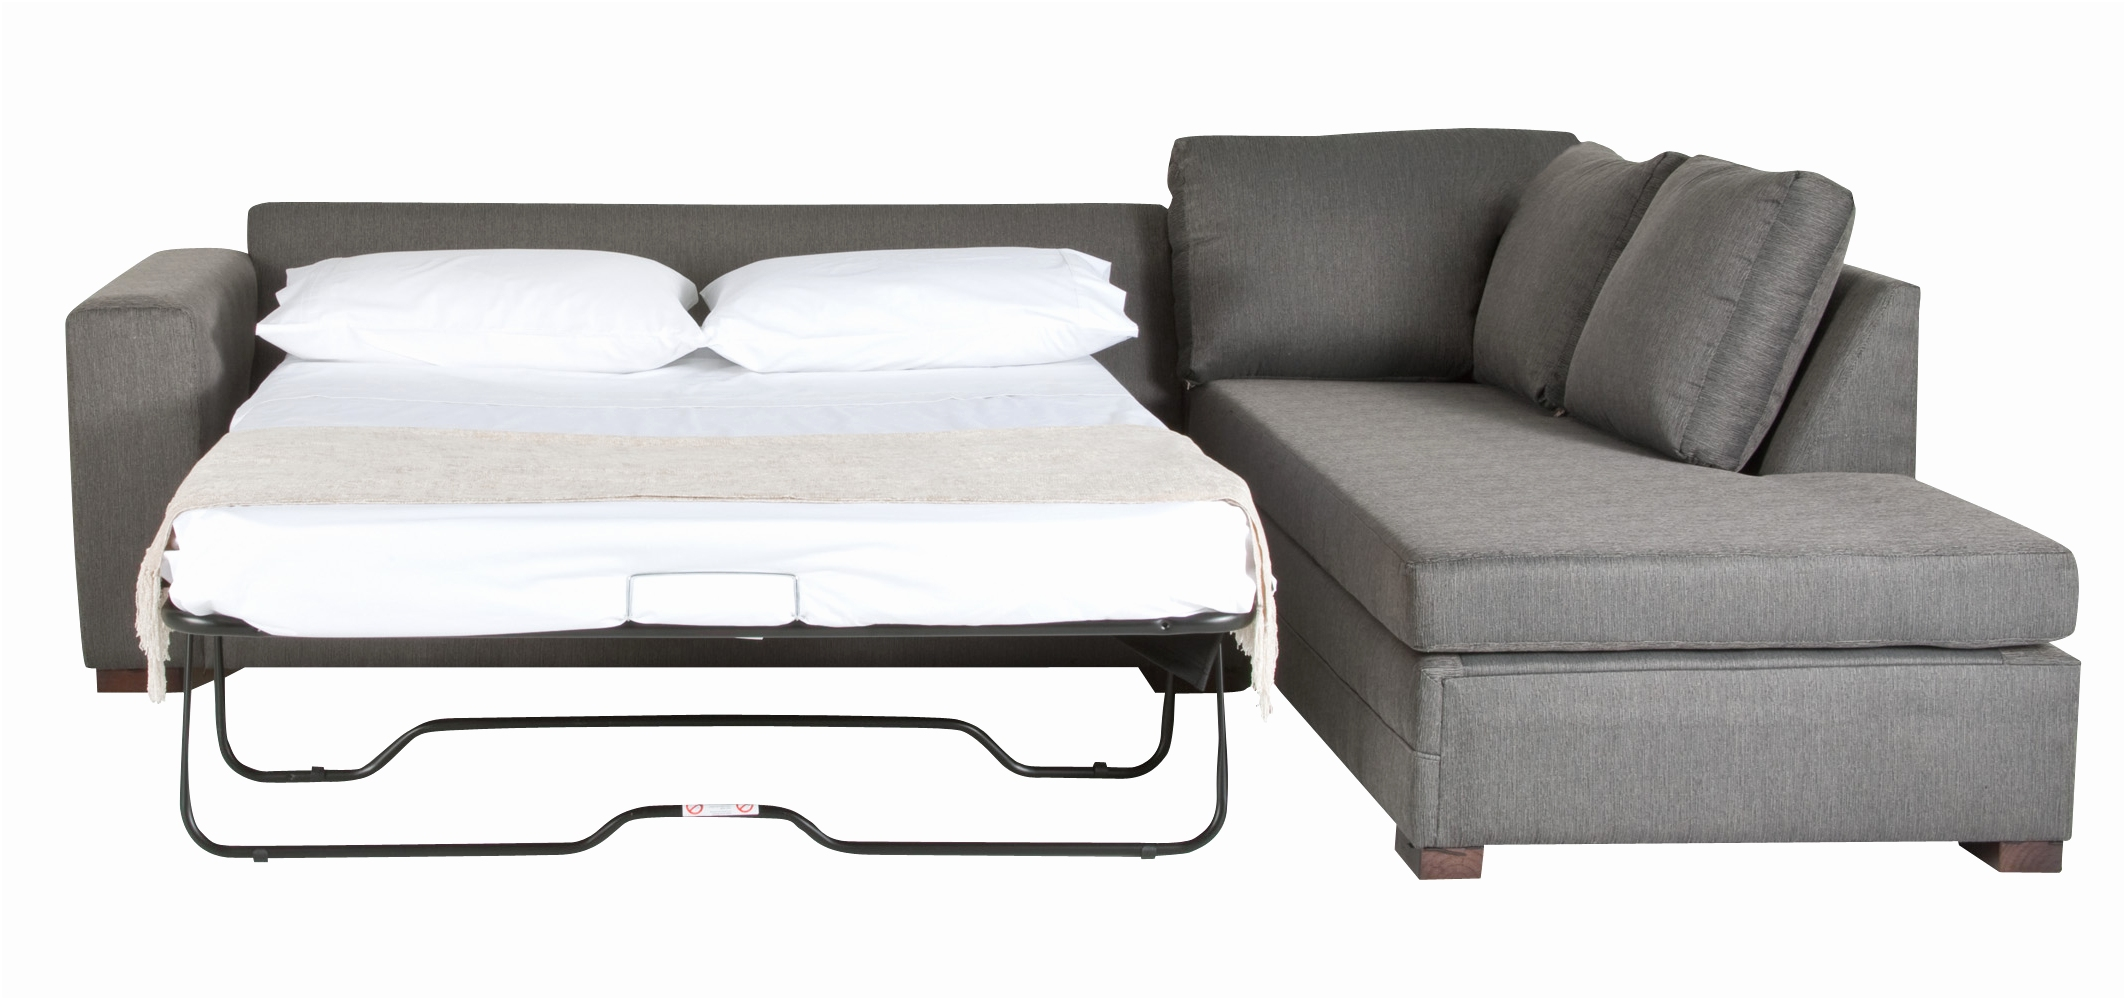 Sectional Sofa Beds Luxury Style Comfort And Functionality All In